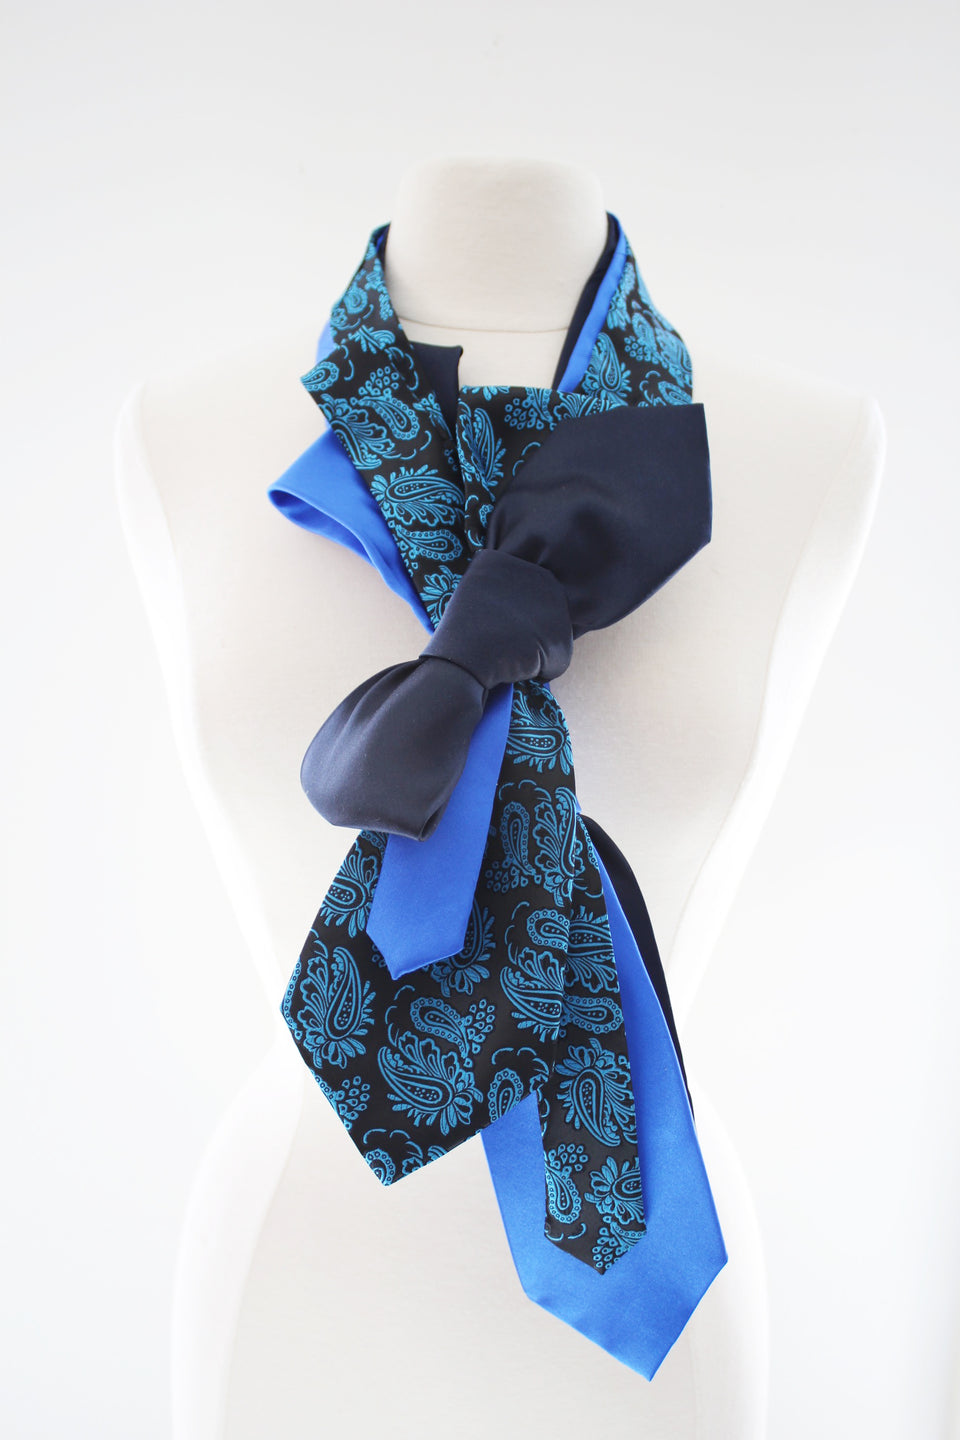 Handmade-Sherlock-Wrap-Bow-Necktie-Dapper-Dandy-Fashion-Couture-Ascot-Scarf-Statement-Neckwear